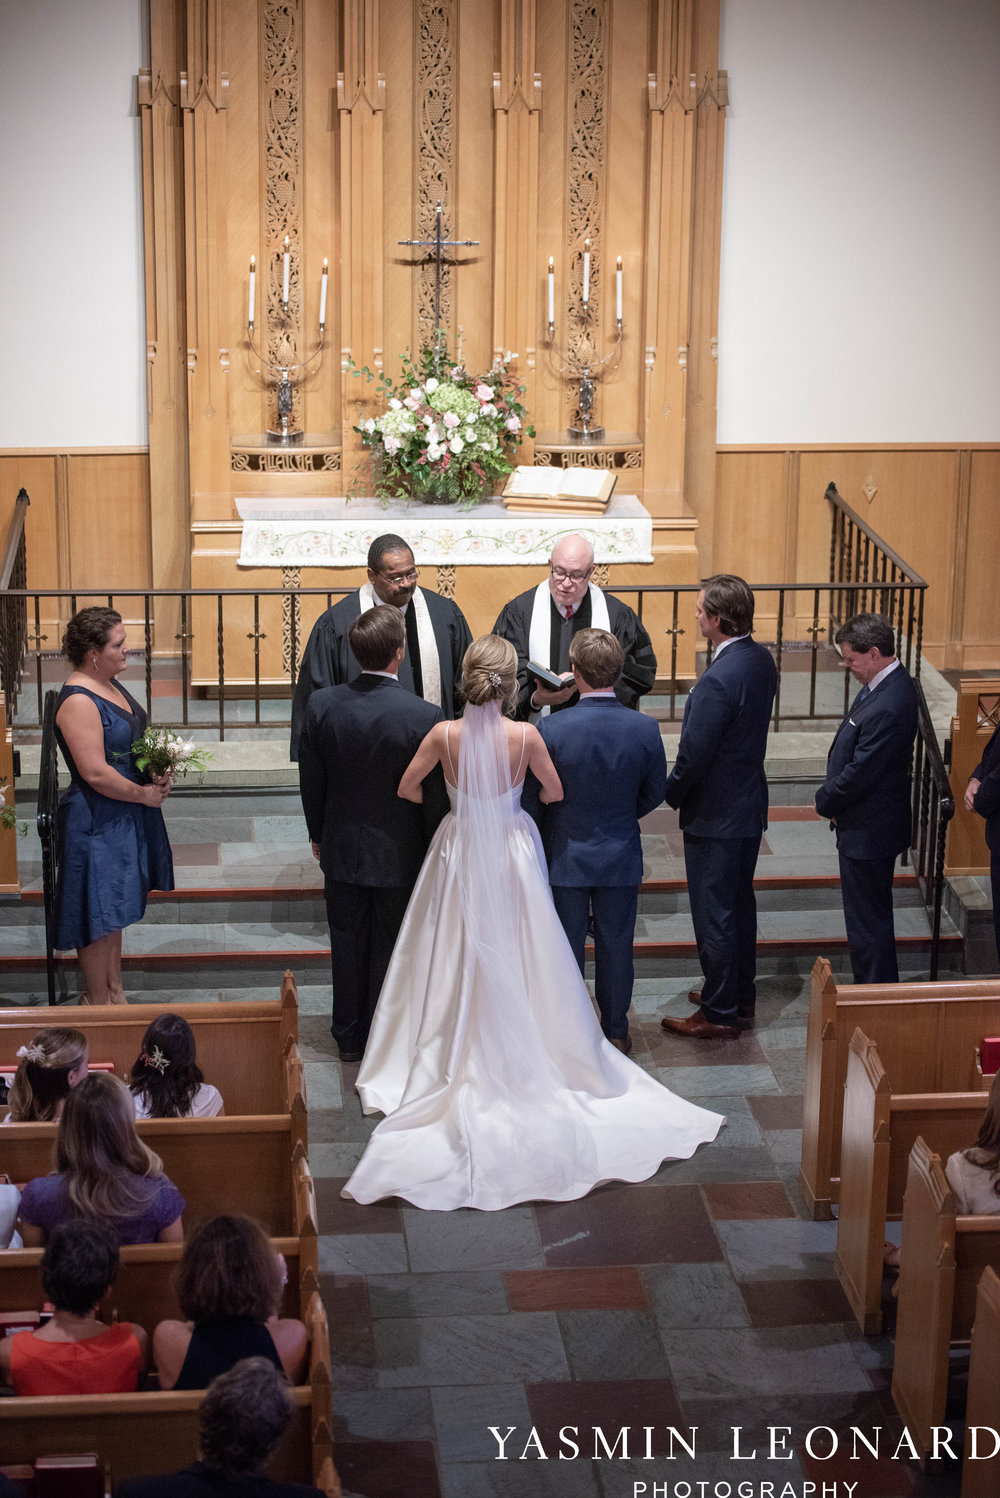 Wesley Memorial United Methodist Church - EmeryWood - High Point Weddings - High Point Wedding Photographer - NC Wedding Photographer - Yasmin Leonard Photography-20.jpg